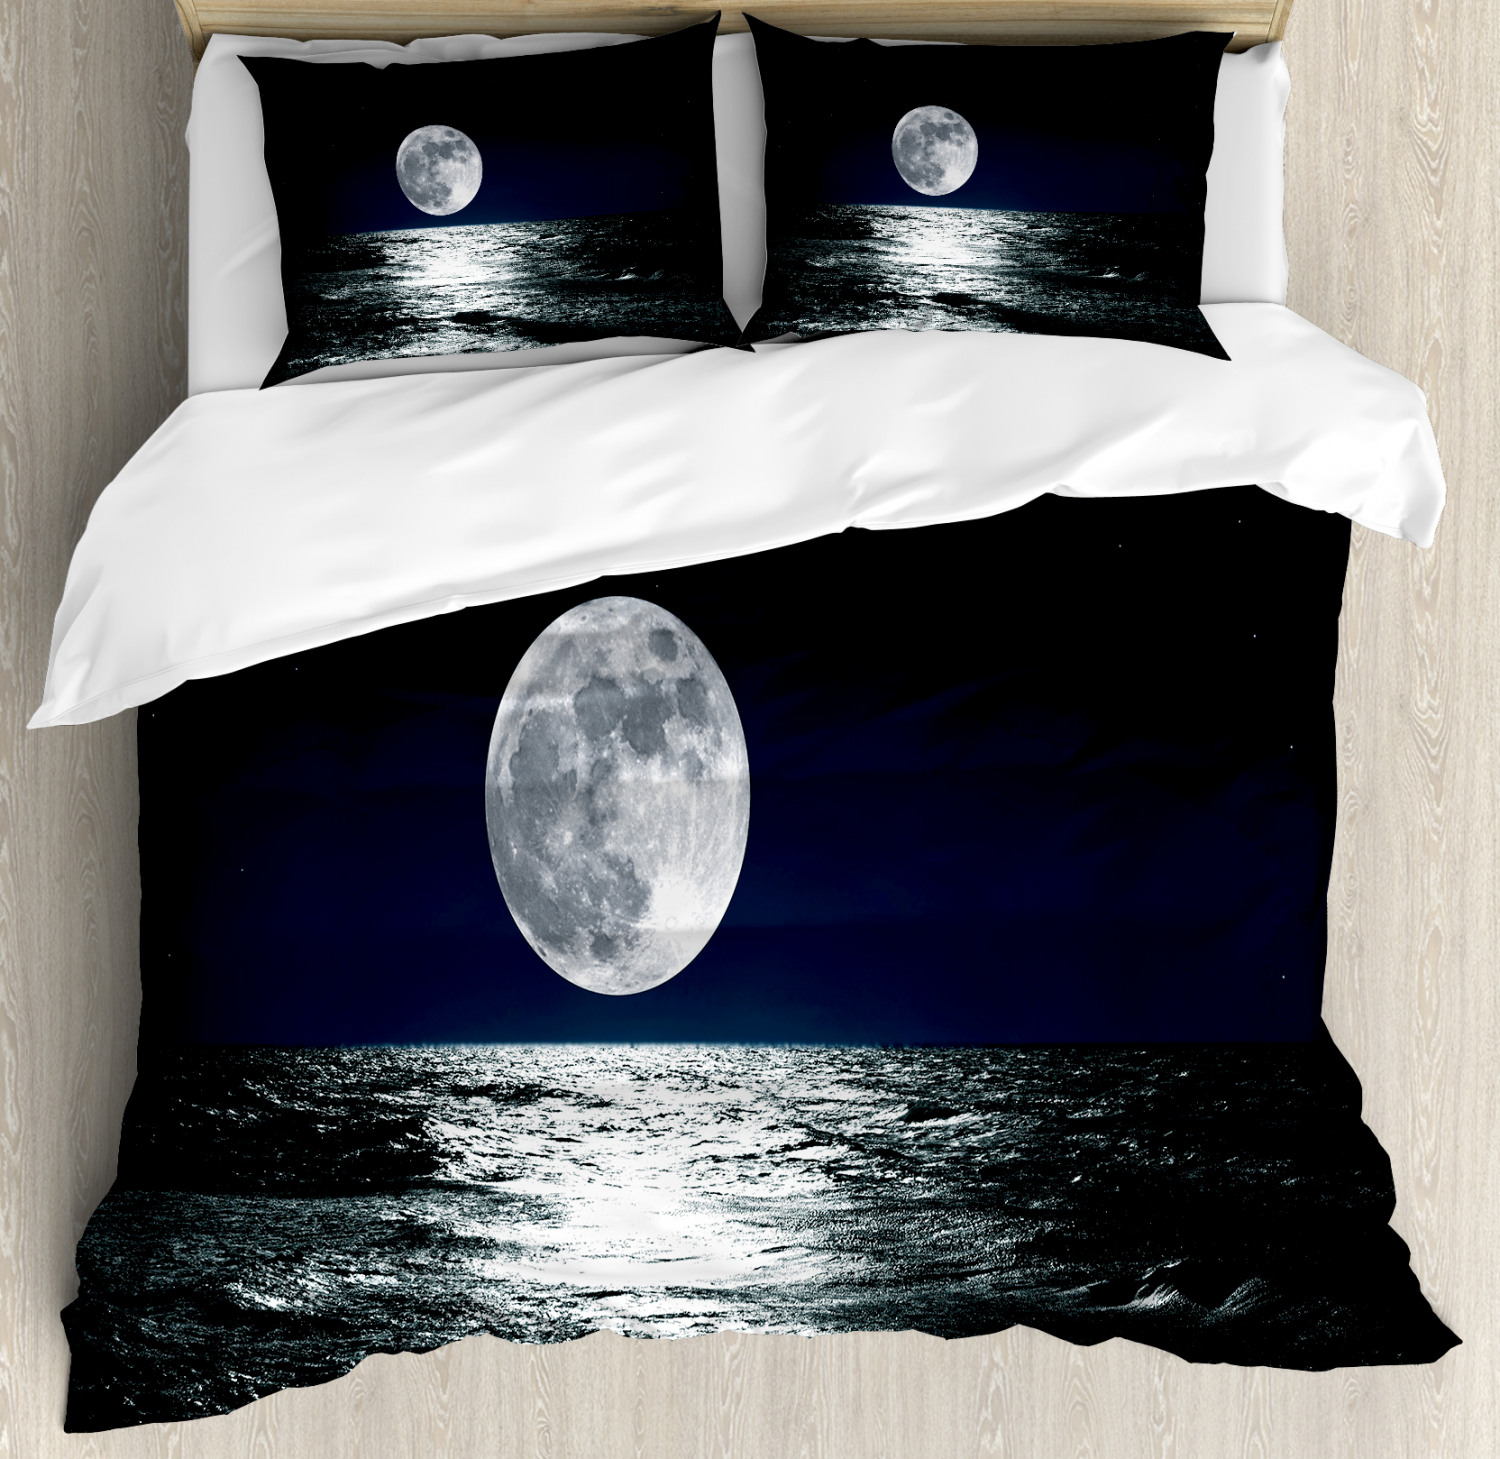 Moon Duvet Cover Set with Pillow Shams Ethereal Theme Drawing Print